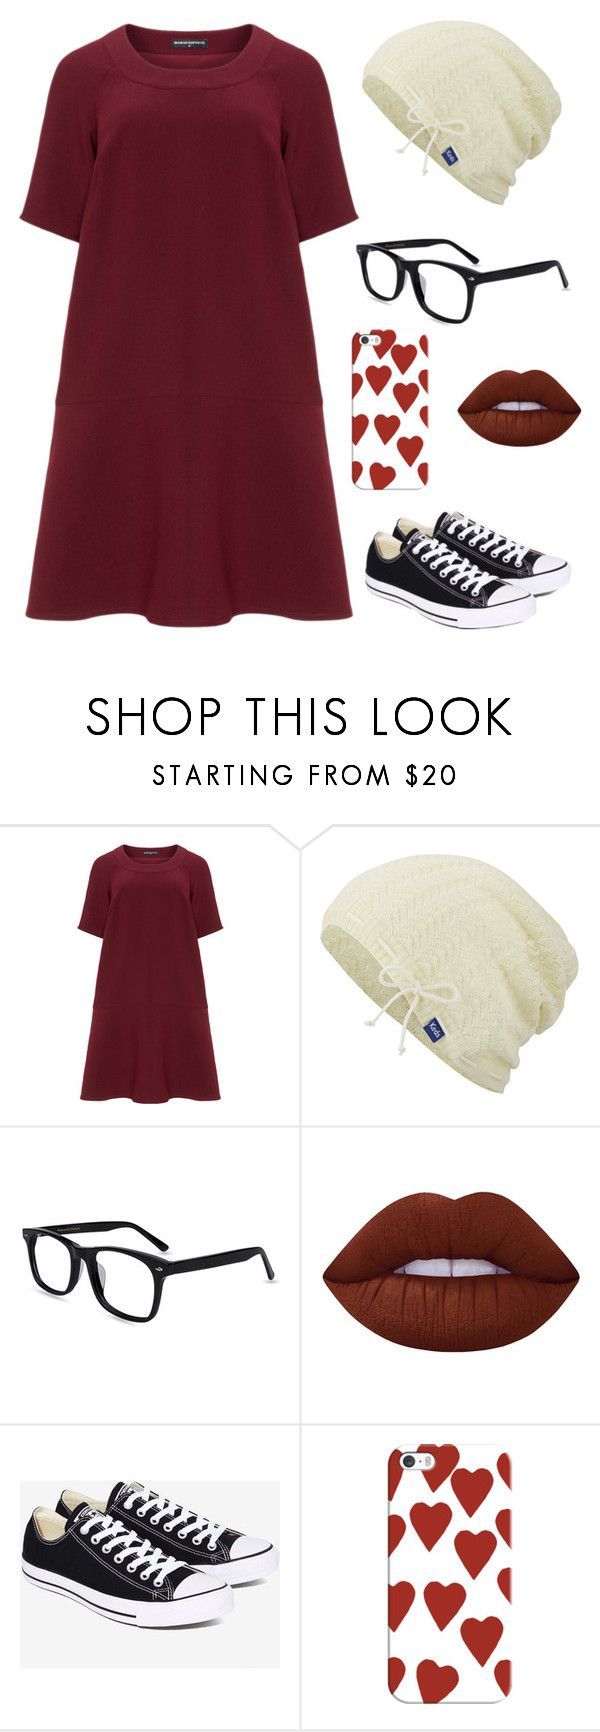 """The Hipster Look"" by emma-be-awesome ❤ liked on Polyvore featuring Manon Baptiste, Keds, Lime Crime, Converse, Casetify and plus size dresses"